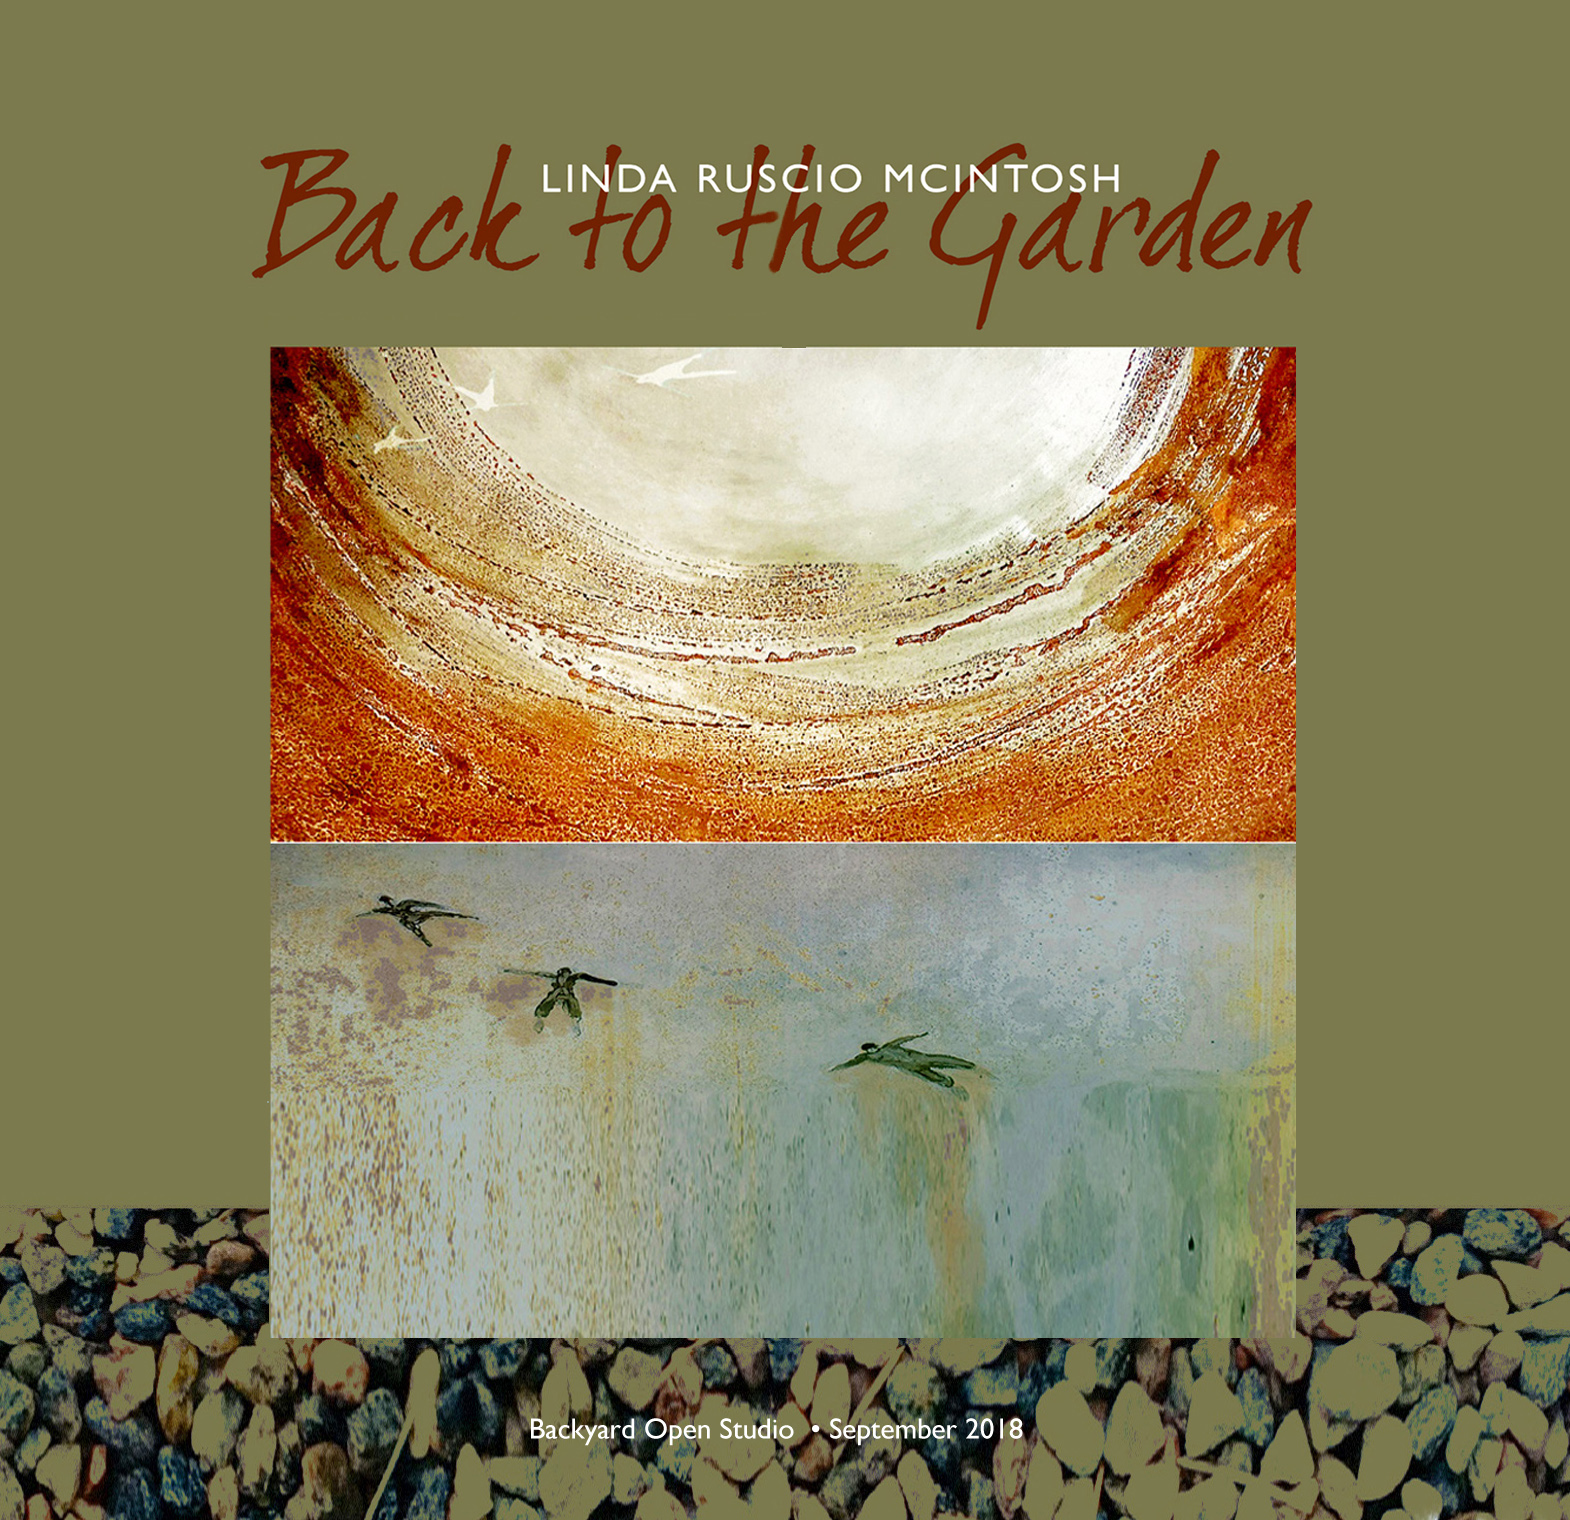 September 2018: Back to the Garden Outdoor Open Studio Reception   Twenty of my latest mixed media assemblages were on display in my backyard hanging on trees, brick walls and fences as well as emerging from the garden floor. Materials used were rusted steel, rocks, wire, glass and other found objects. All pieces are treated with an exterior finish so that they can be displayed outdoors. The event was such a success, I plan on making it an annual event presenting a new series based upon the human/earth relationship.